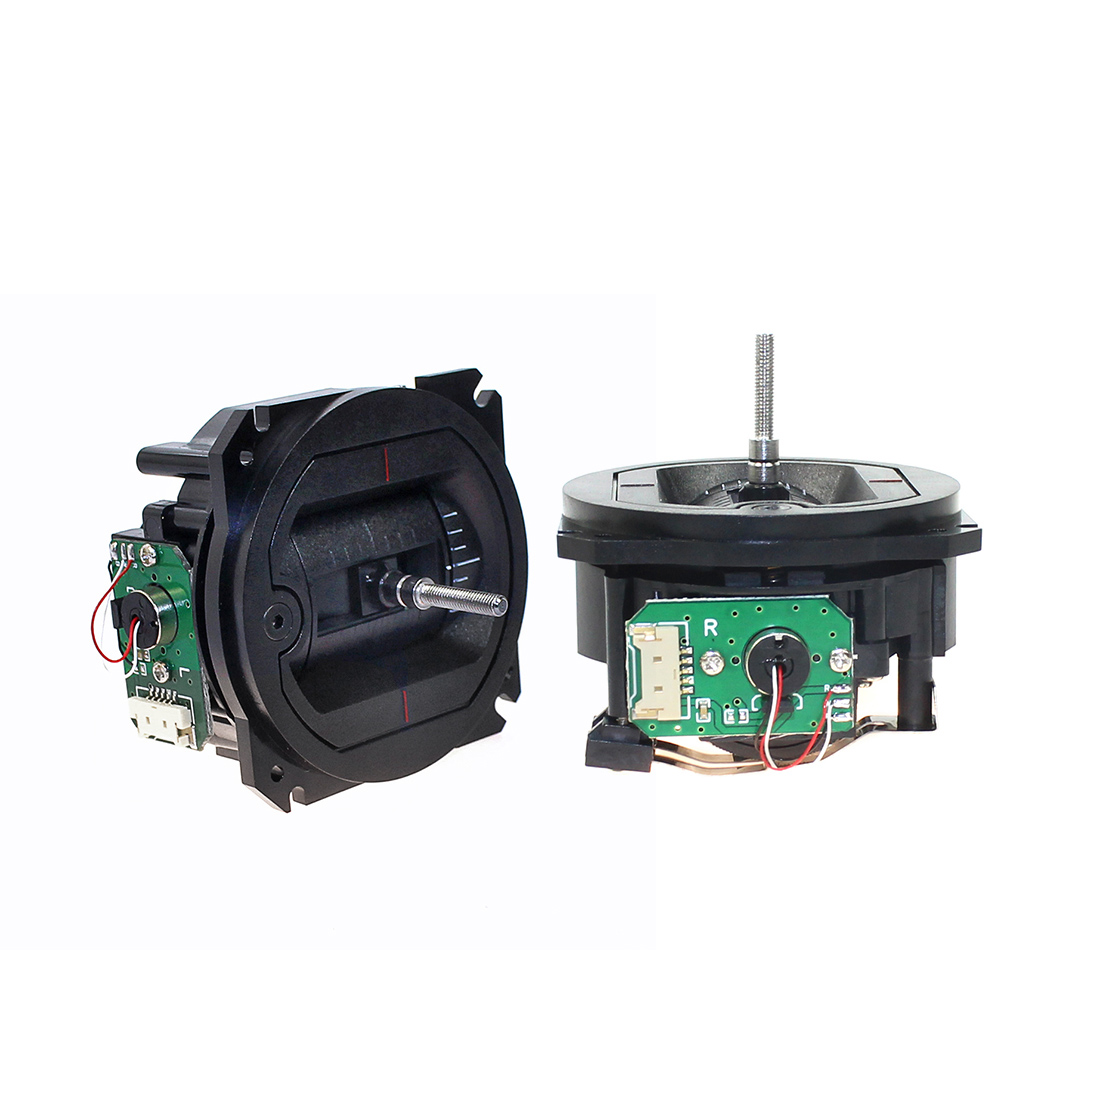 2Pcs Jumper Hall Sensor Gimbal for Jumper T16 pro Plus Radios Transmitter Upgrade T16 Series Sensor Gimbal Repairing Kit(China)